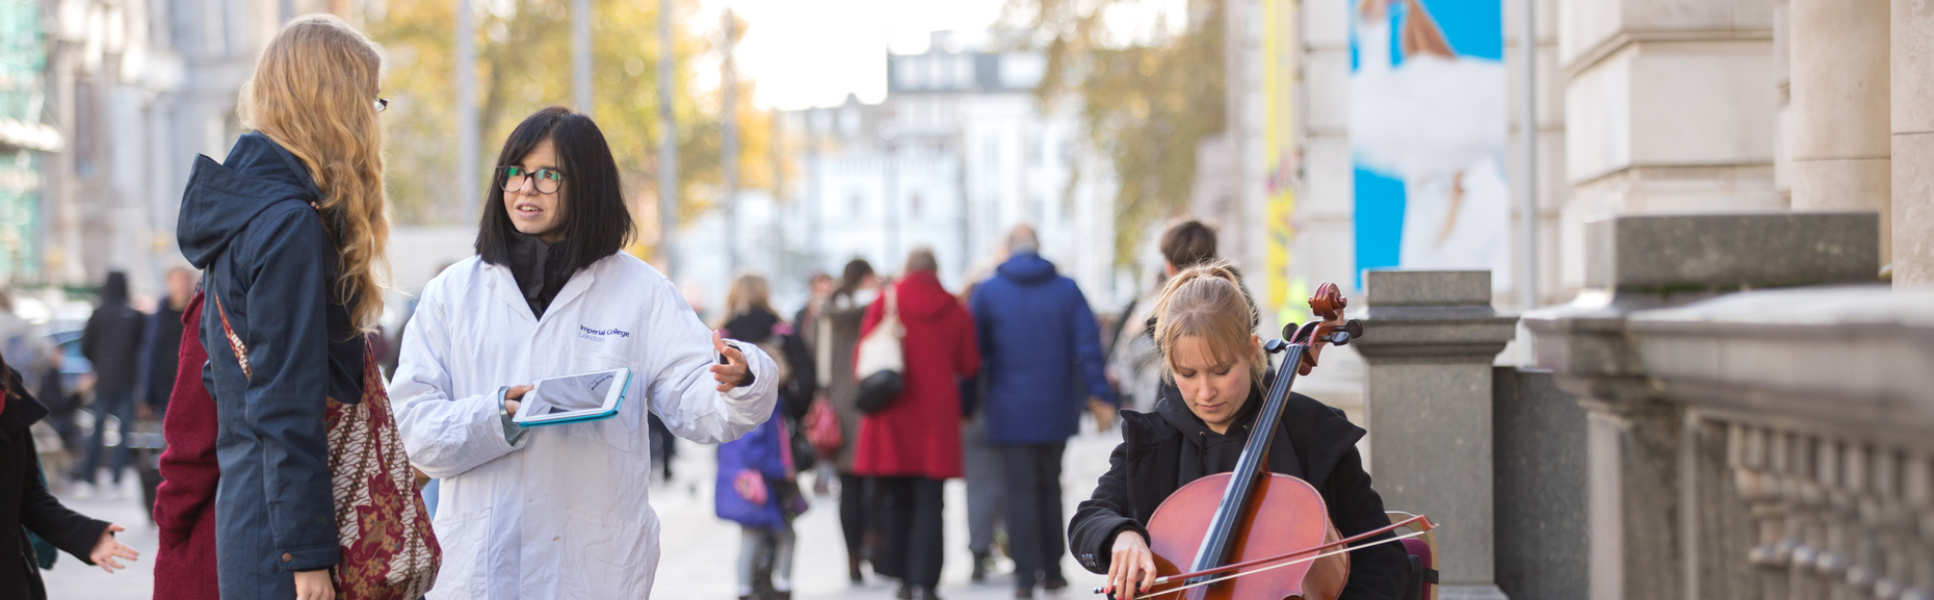 An Imperial researcher and musician engage members of the public on Exhibition road